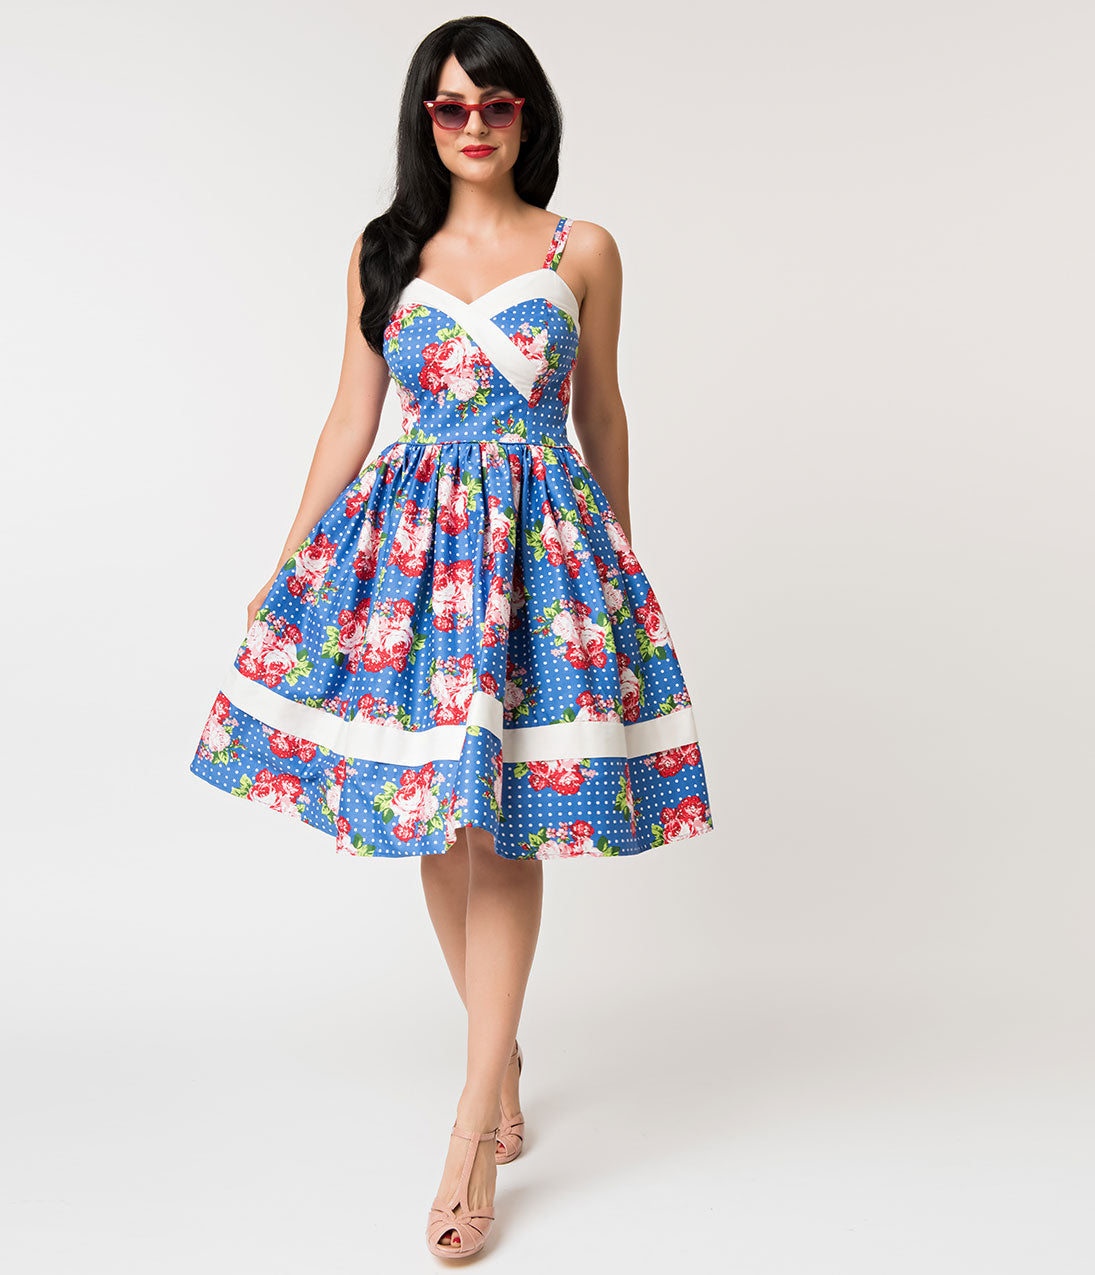 2a3d30c855 Unique Vintage Royal Blue   White Dot Floral Print Darienne Swing Dress